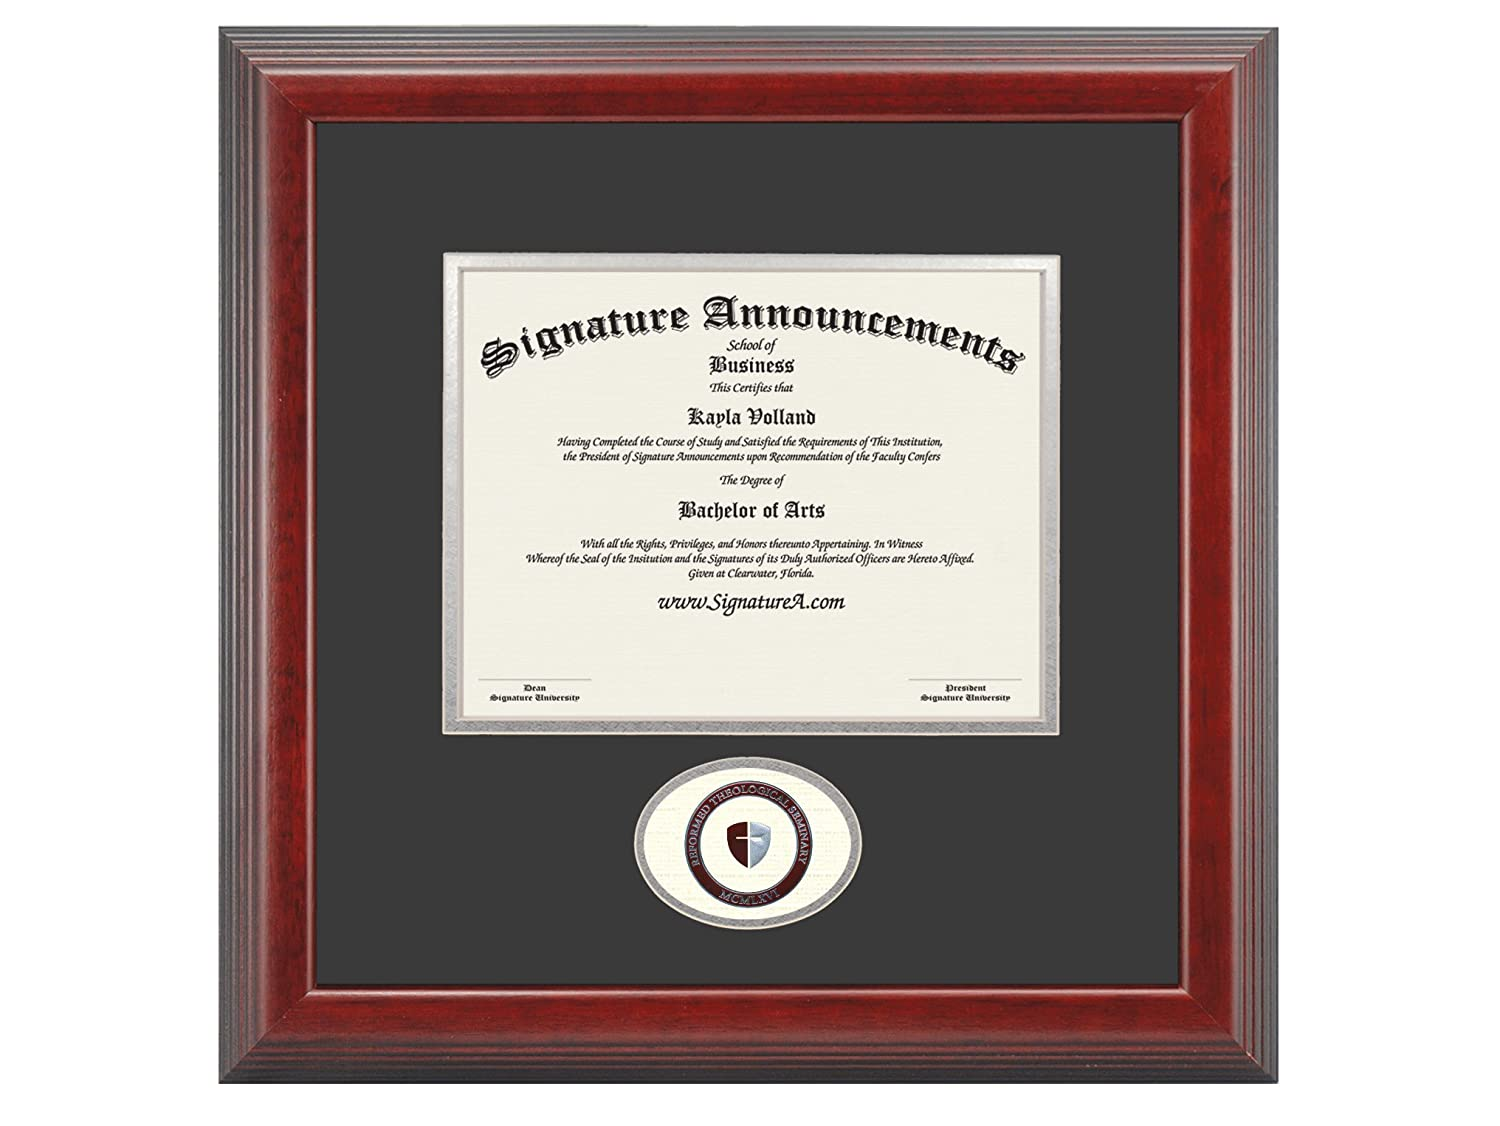 Signature Announcements Reformed Theological Seminary Sculpted Foil Seal Graduation Diploma Frame 16 x 16 Cherry